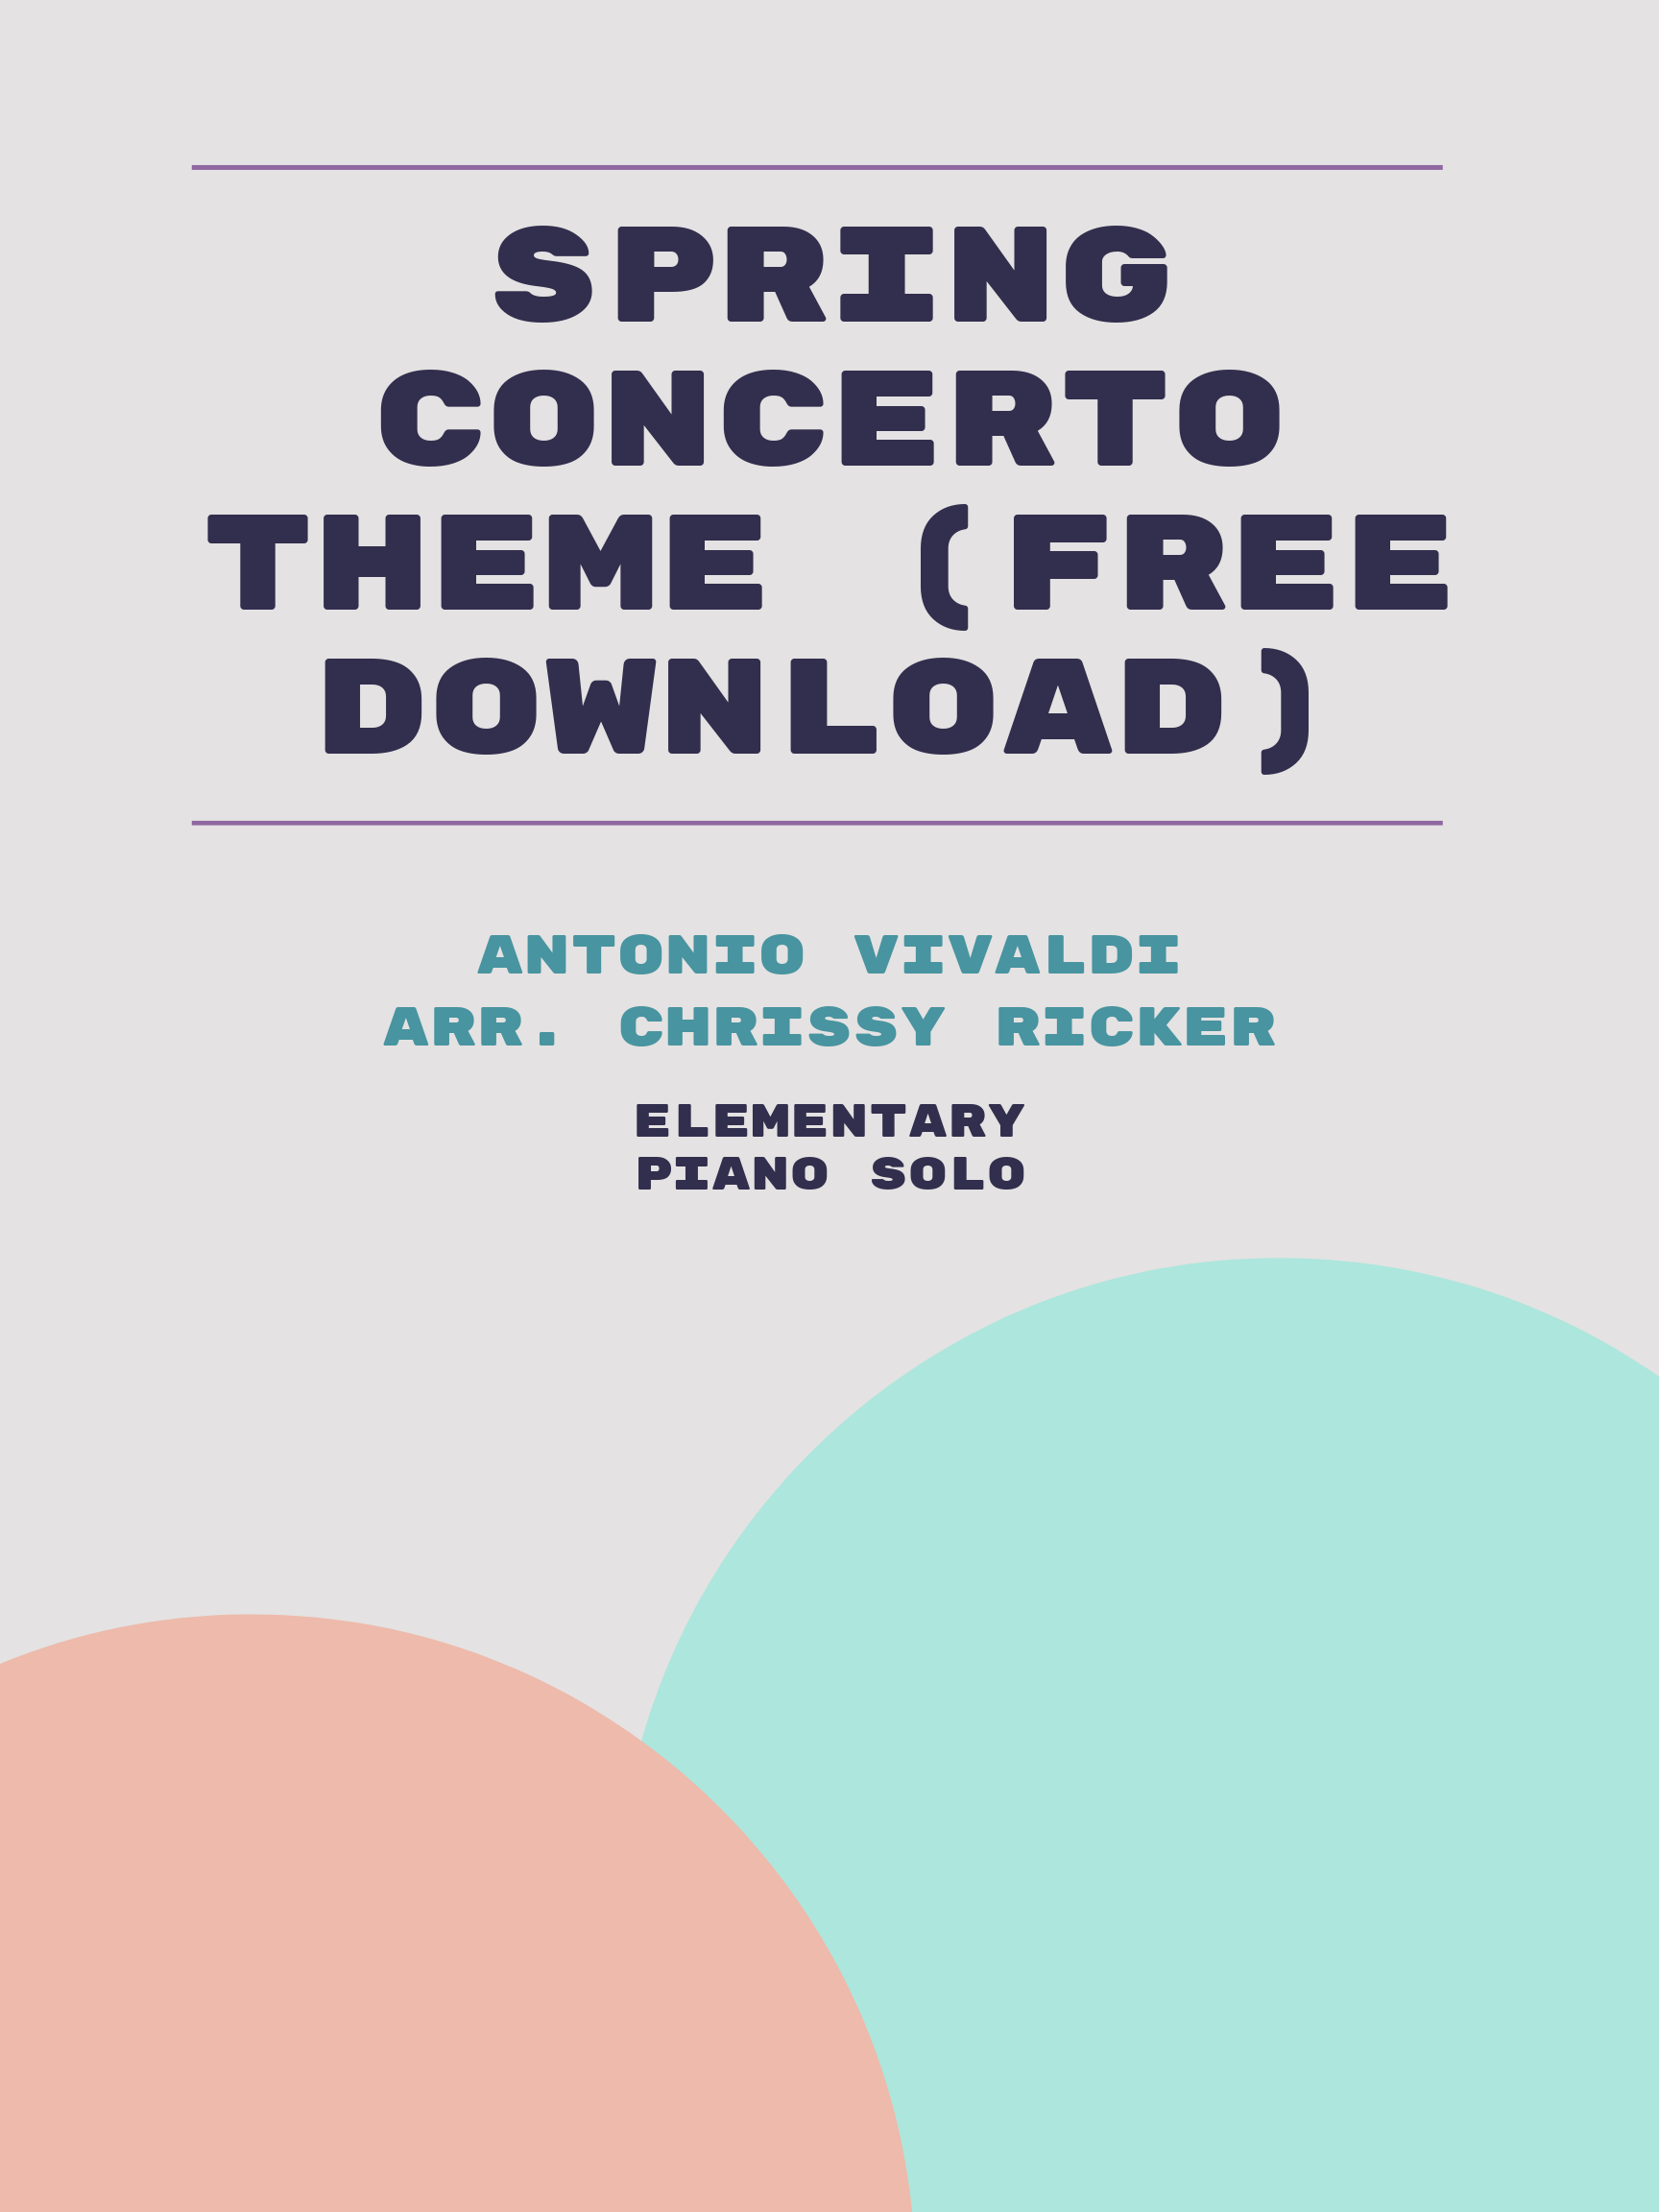 Spring Concerto Theme (free download) by Antonio Vivaldi